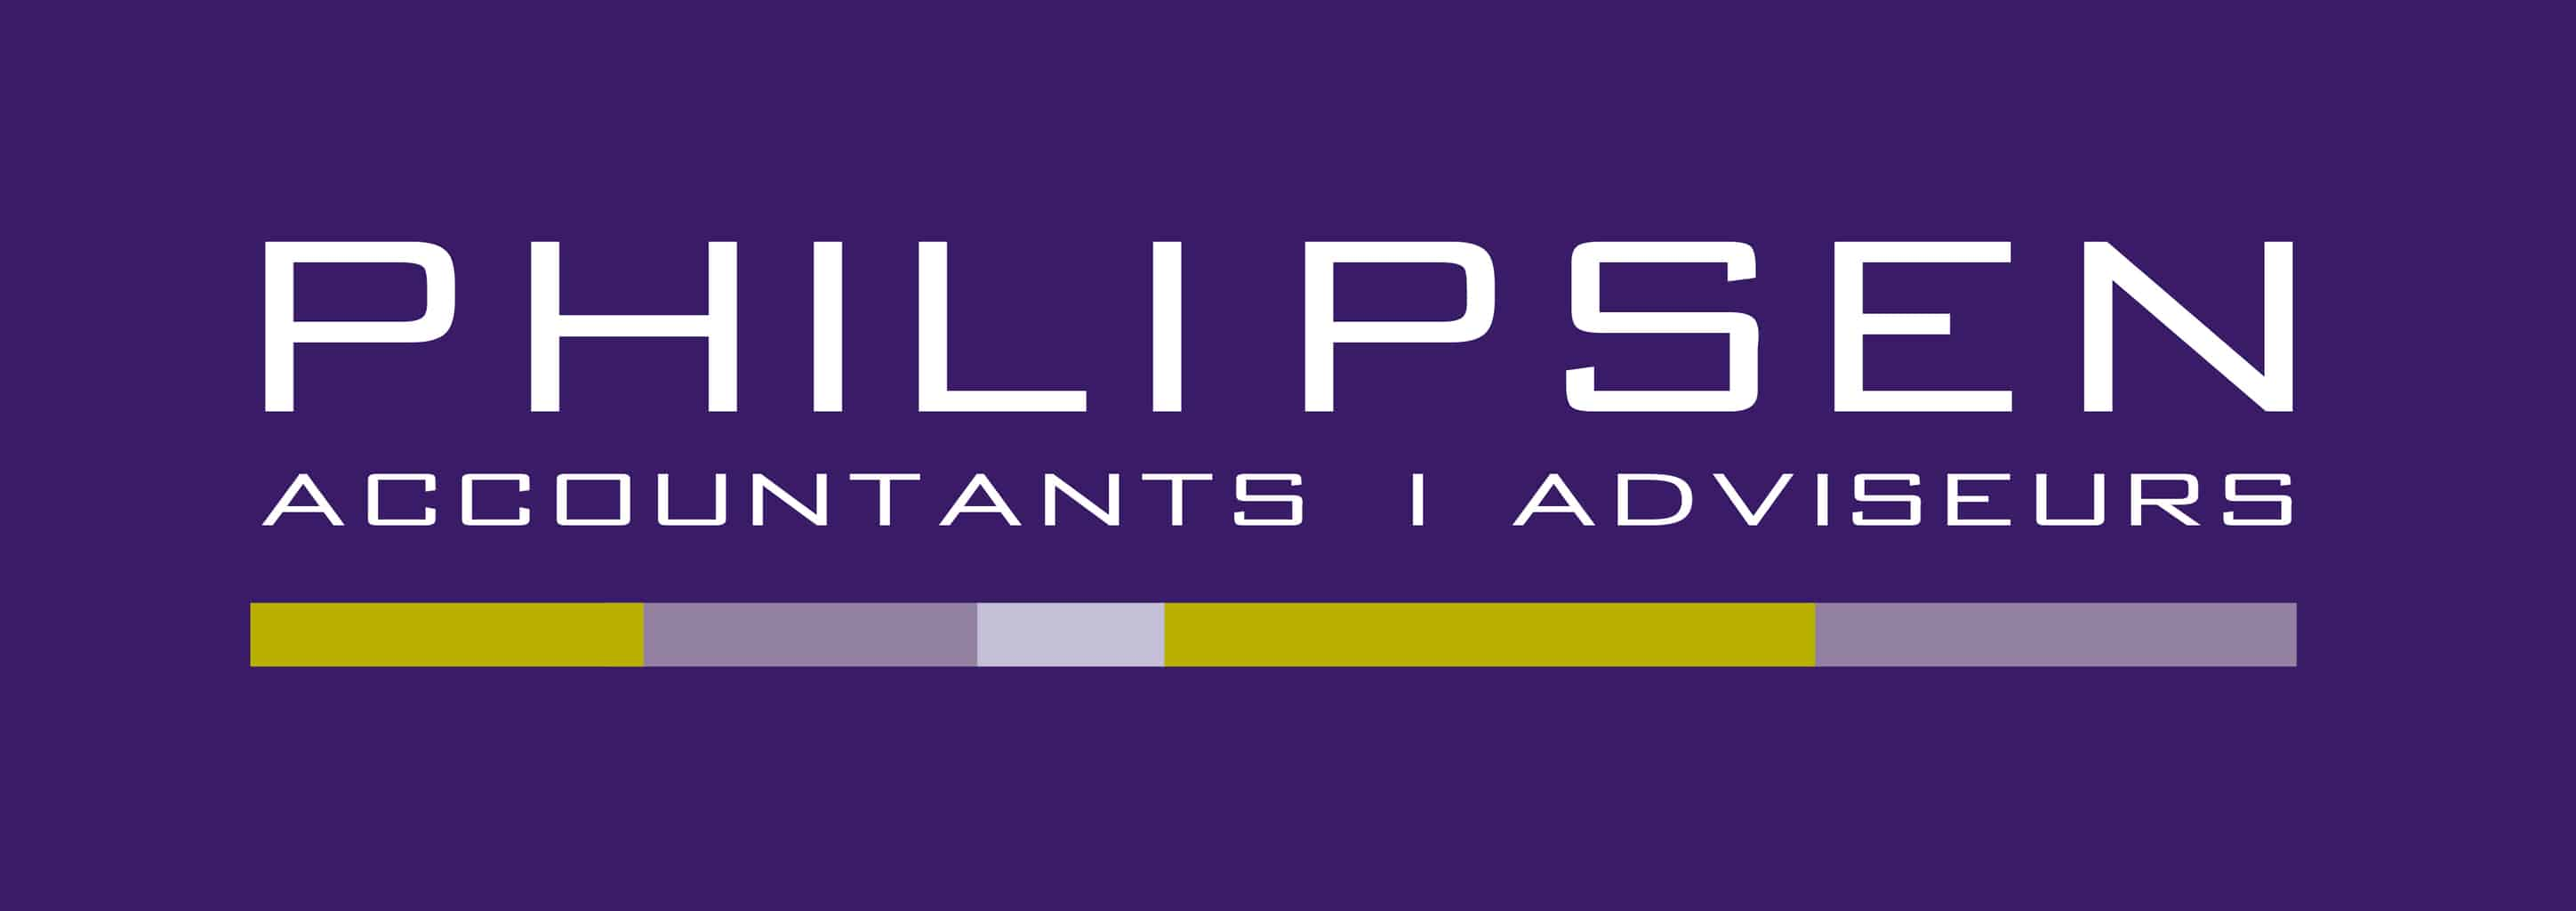 Sponsor Philipsen Accountants | Adviseurs